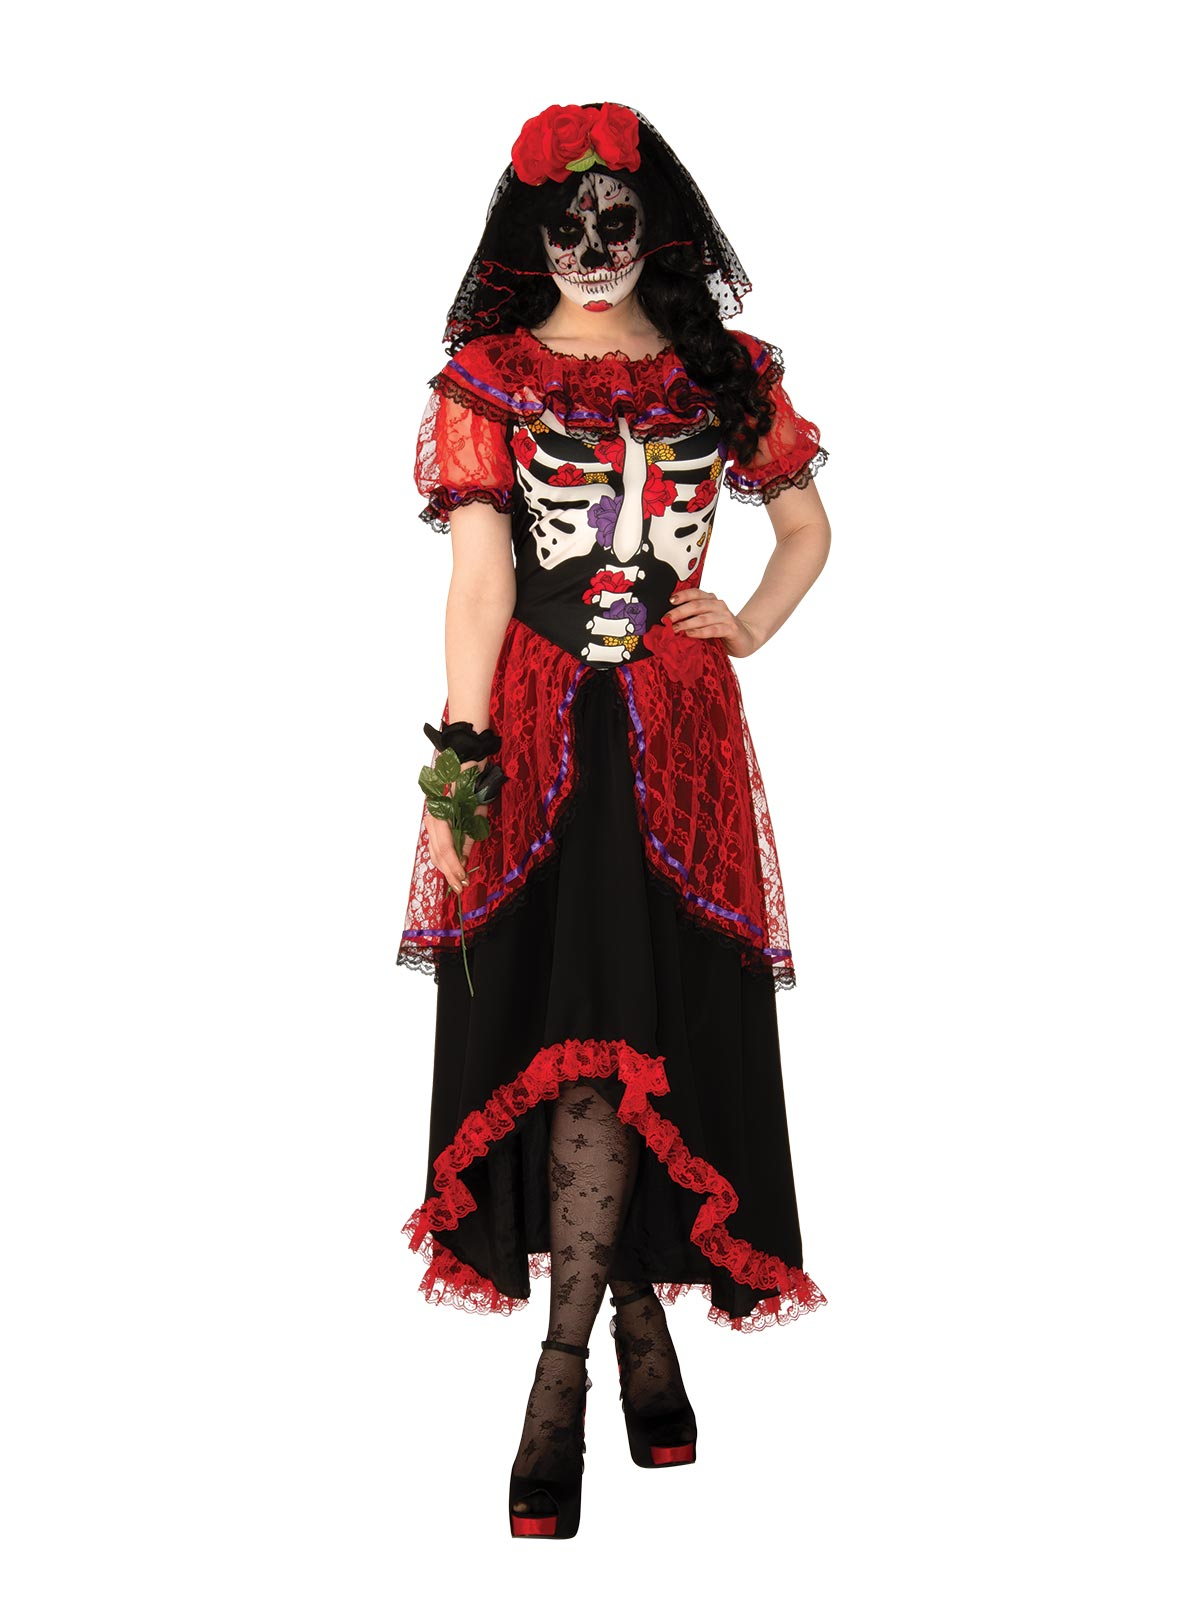 Day of the Dead Costume - Buy Online Only